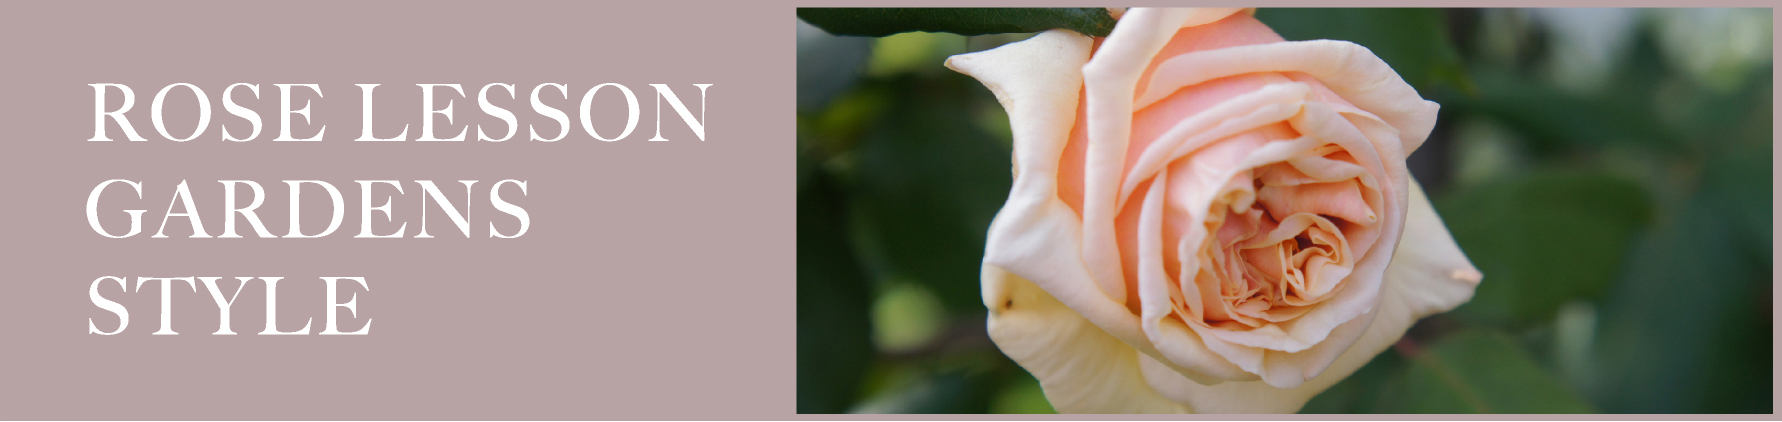 ROSE LESSON in GARDENS STYLE